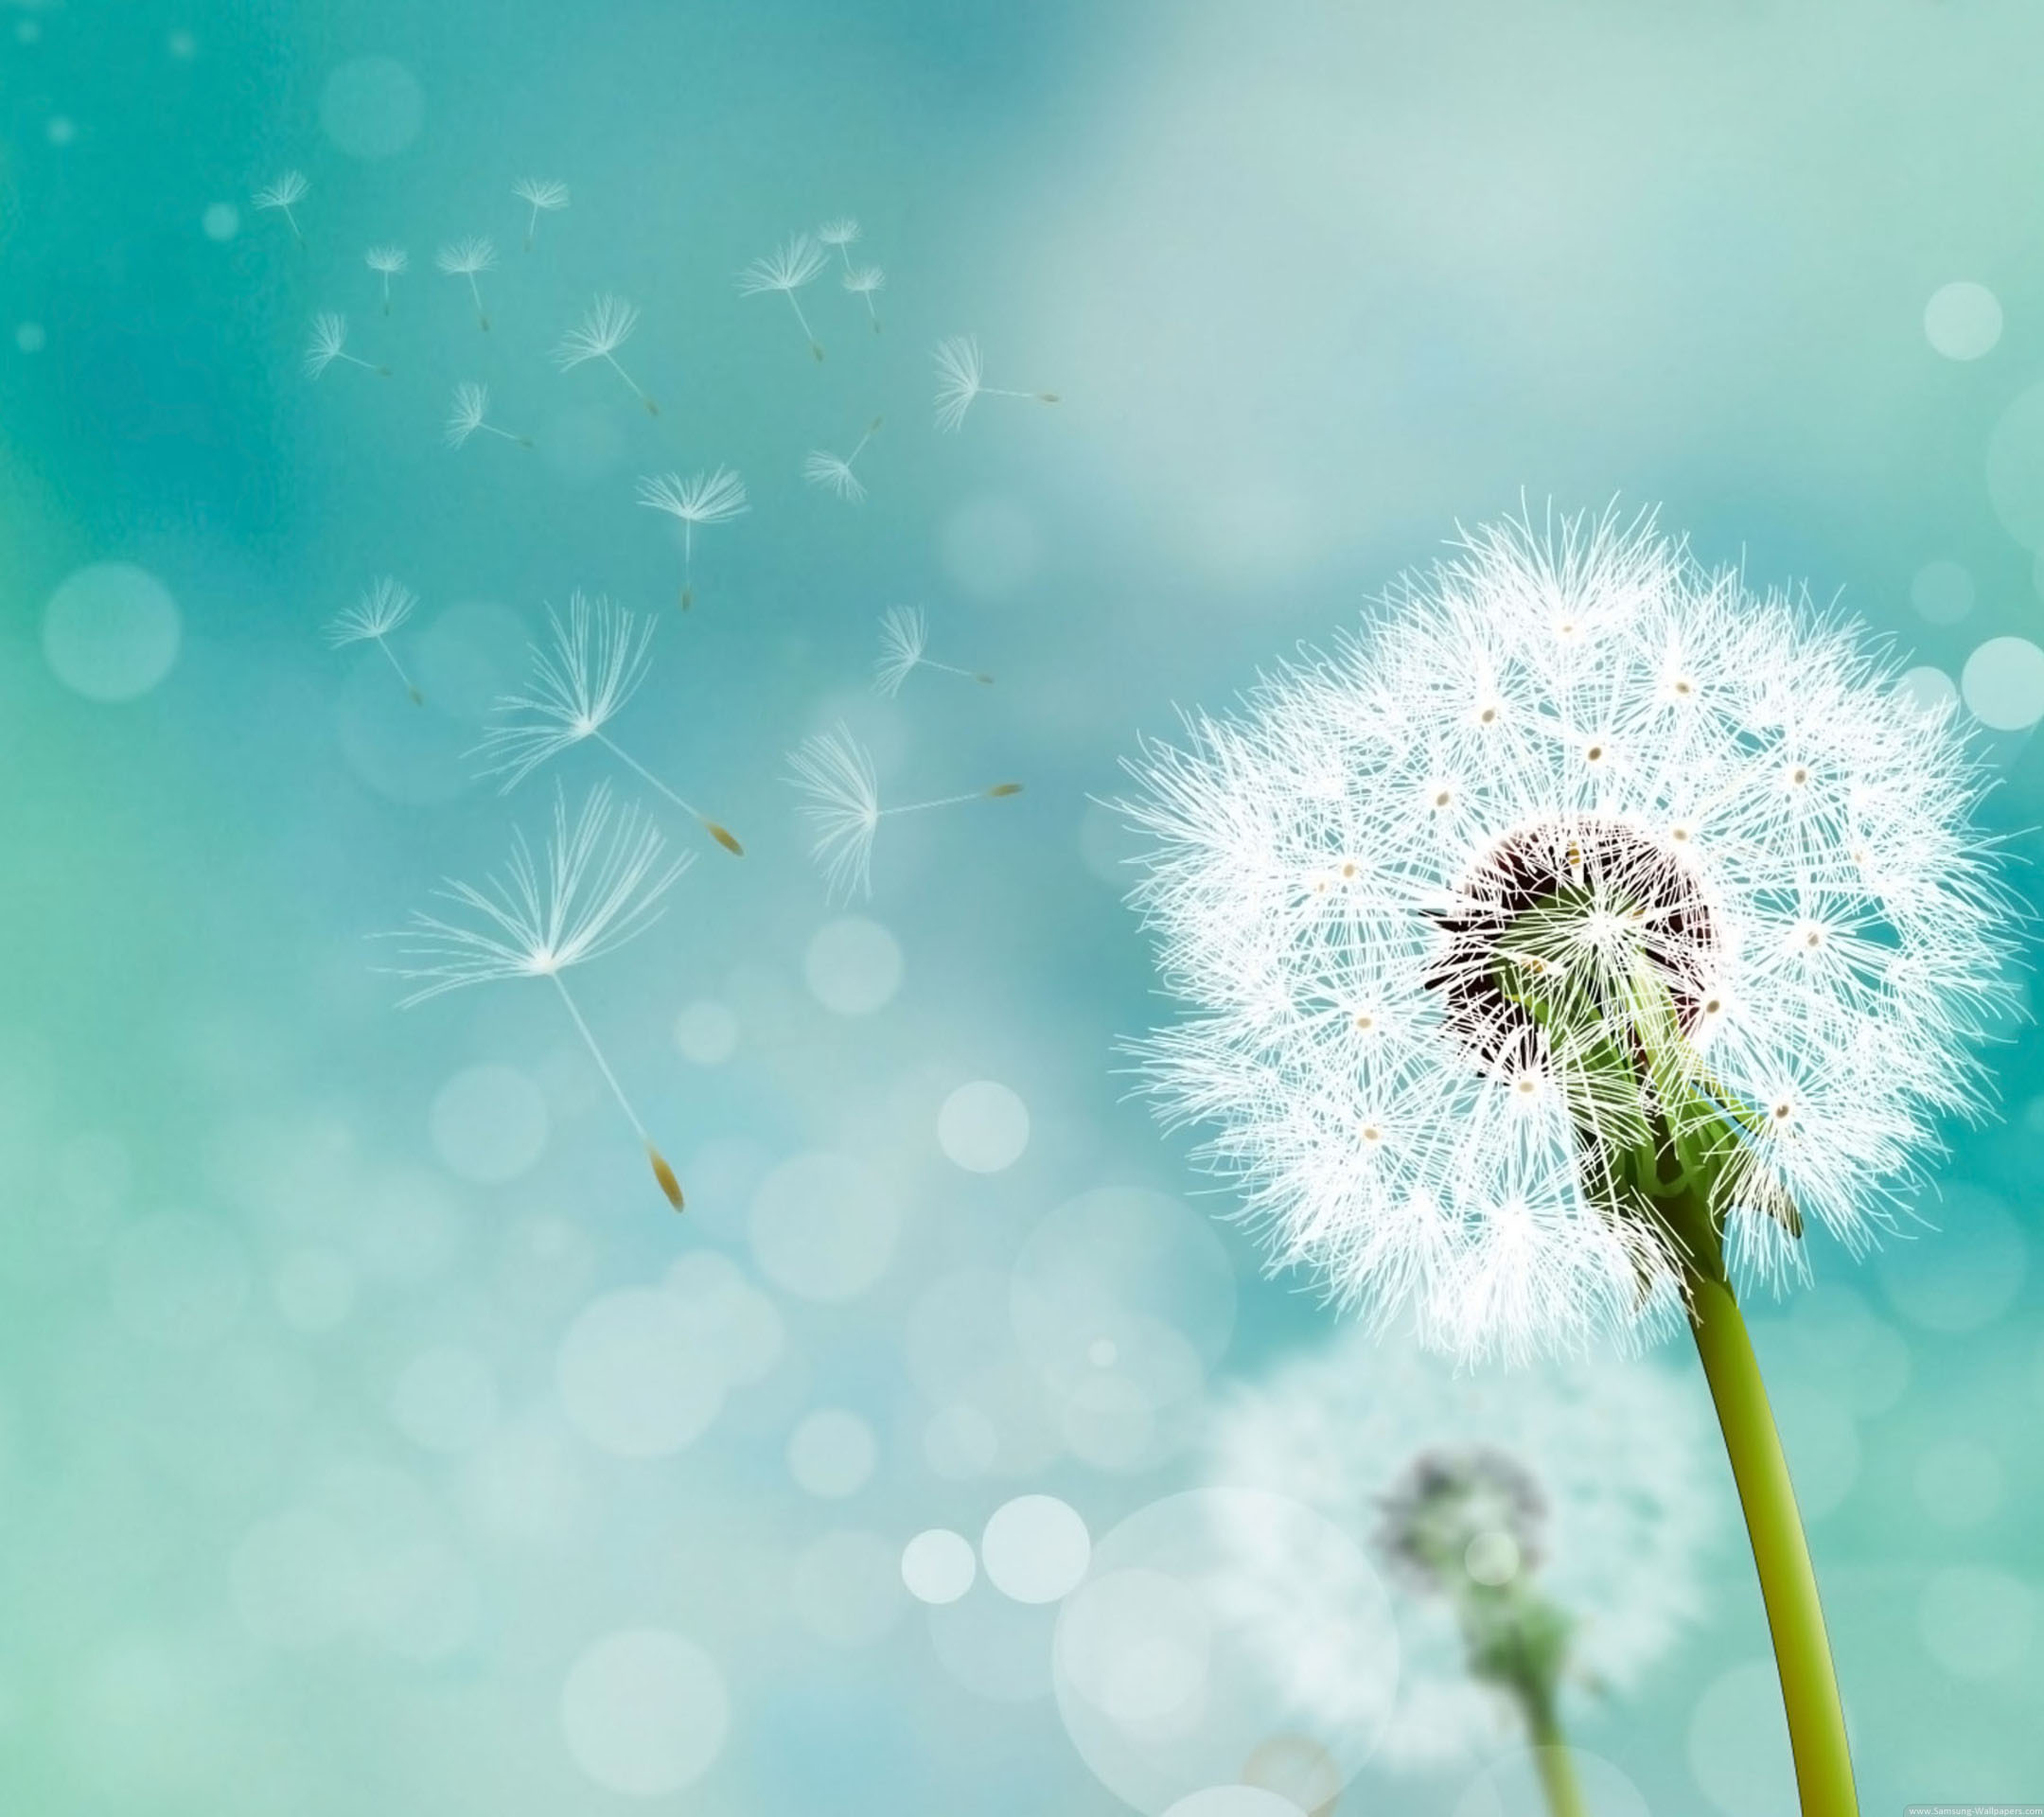 Dandelion backgrounds 2160x1920 Samsung Galaxy S4 Wallpaper HD Samsung 2160x1920